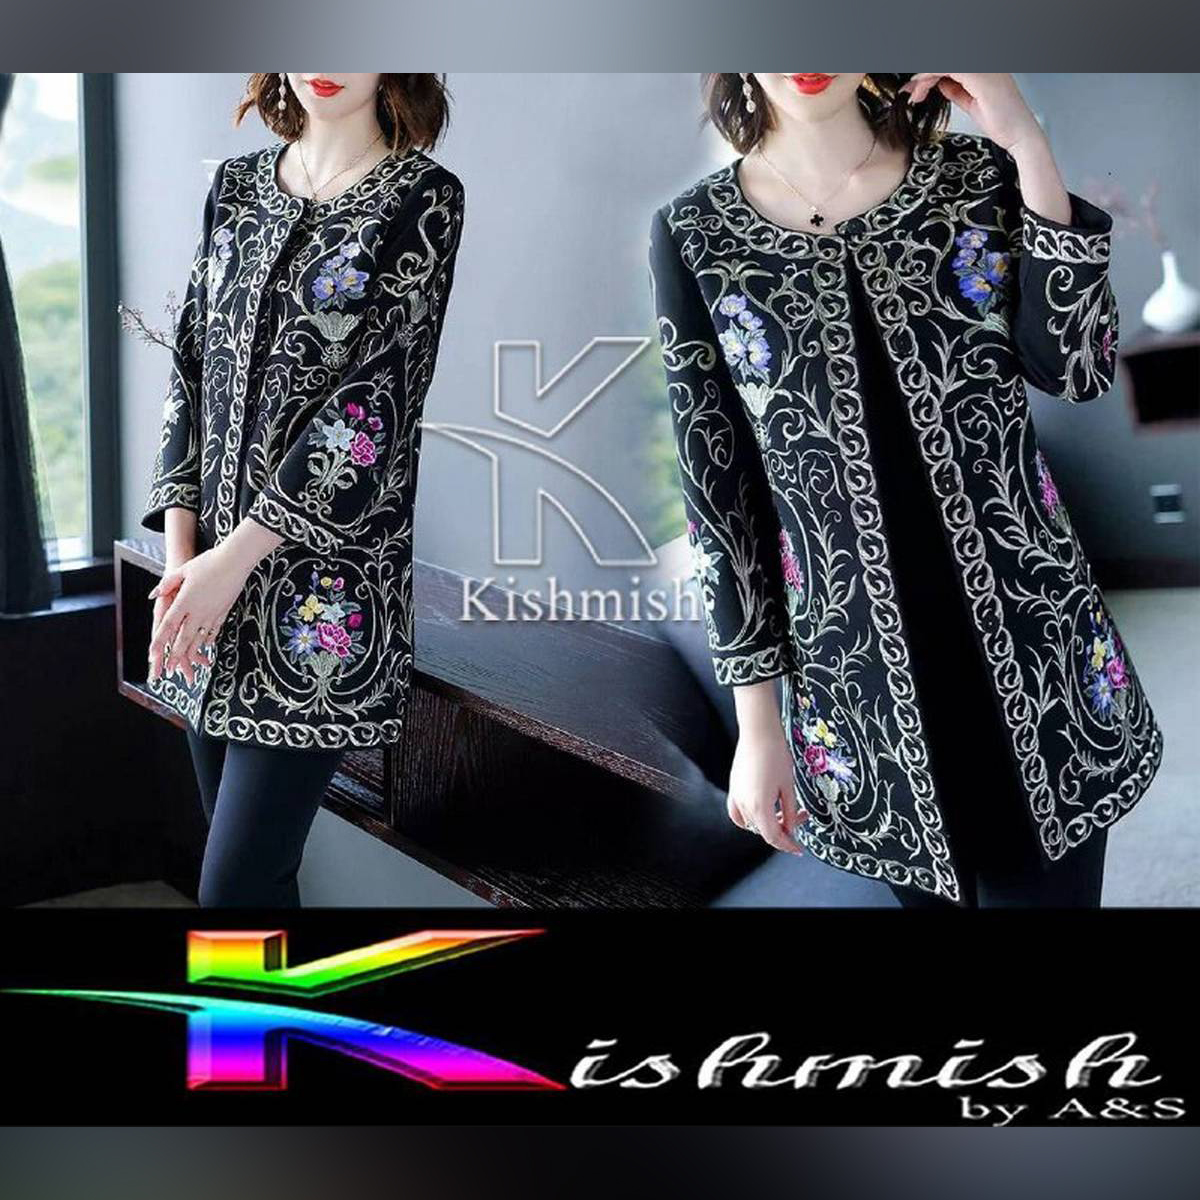 Kishmish Royal Embroidered Blazer (Coaty) for her by Express Deals